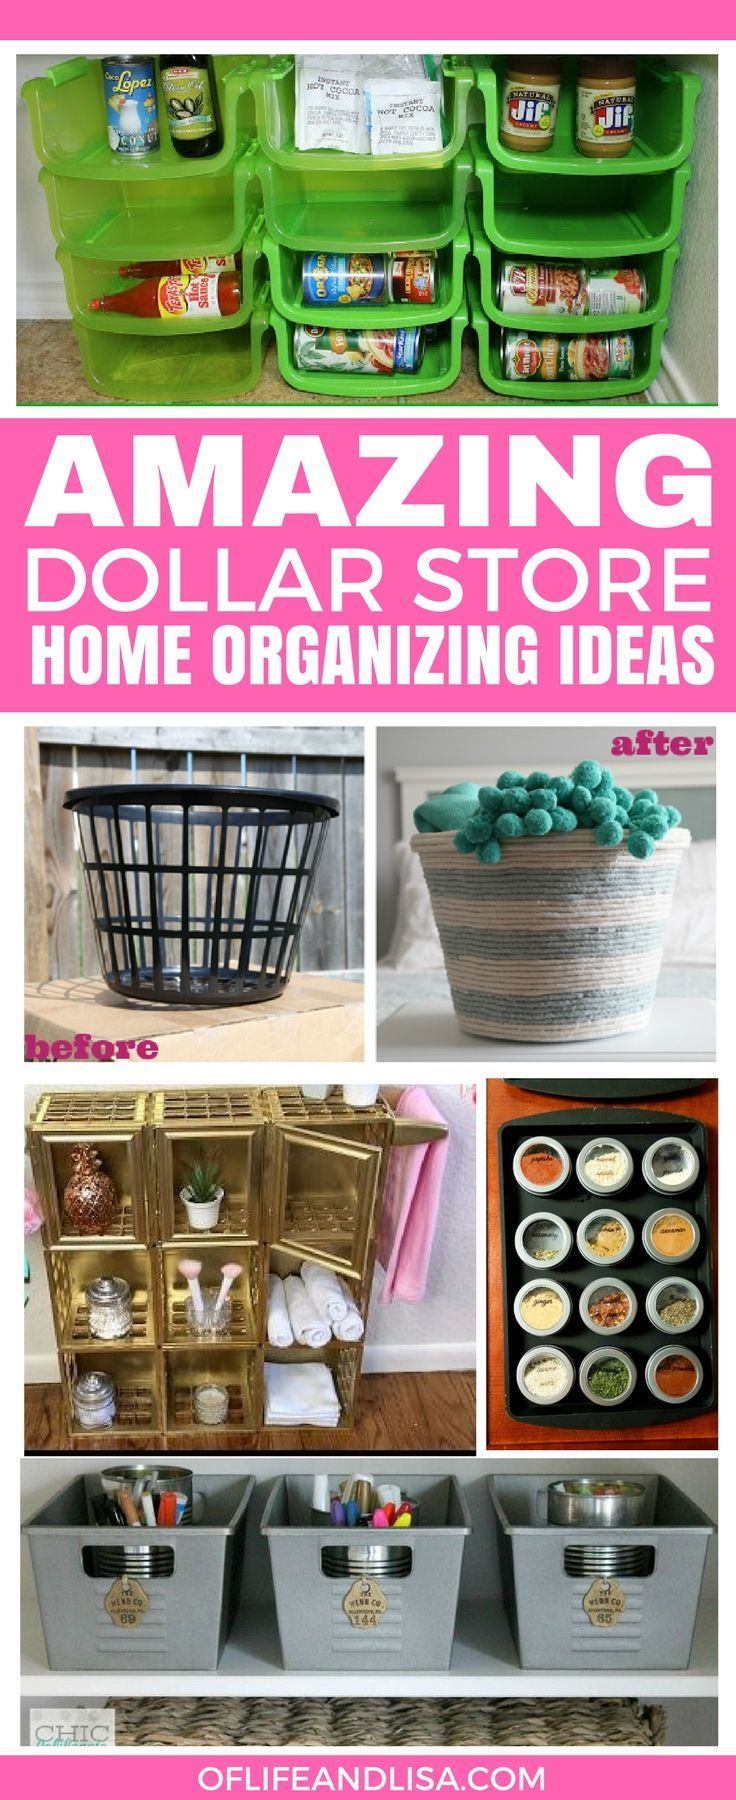 Ok, I'm seriously loving all of these DIY dollar store organizers for the home. I need to make a trip to Dollar Tree asap! Repin if you agree! #home #organizing #declutter #tidy #DIY #crafts